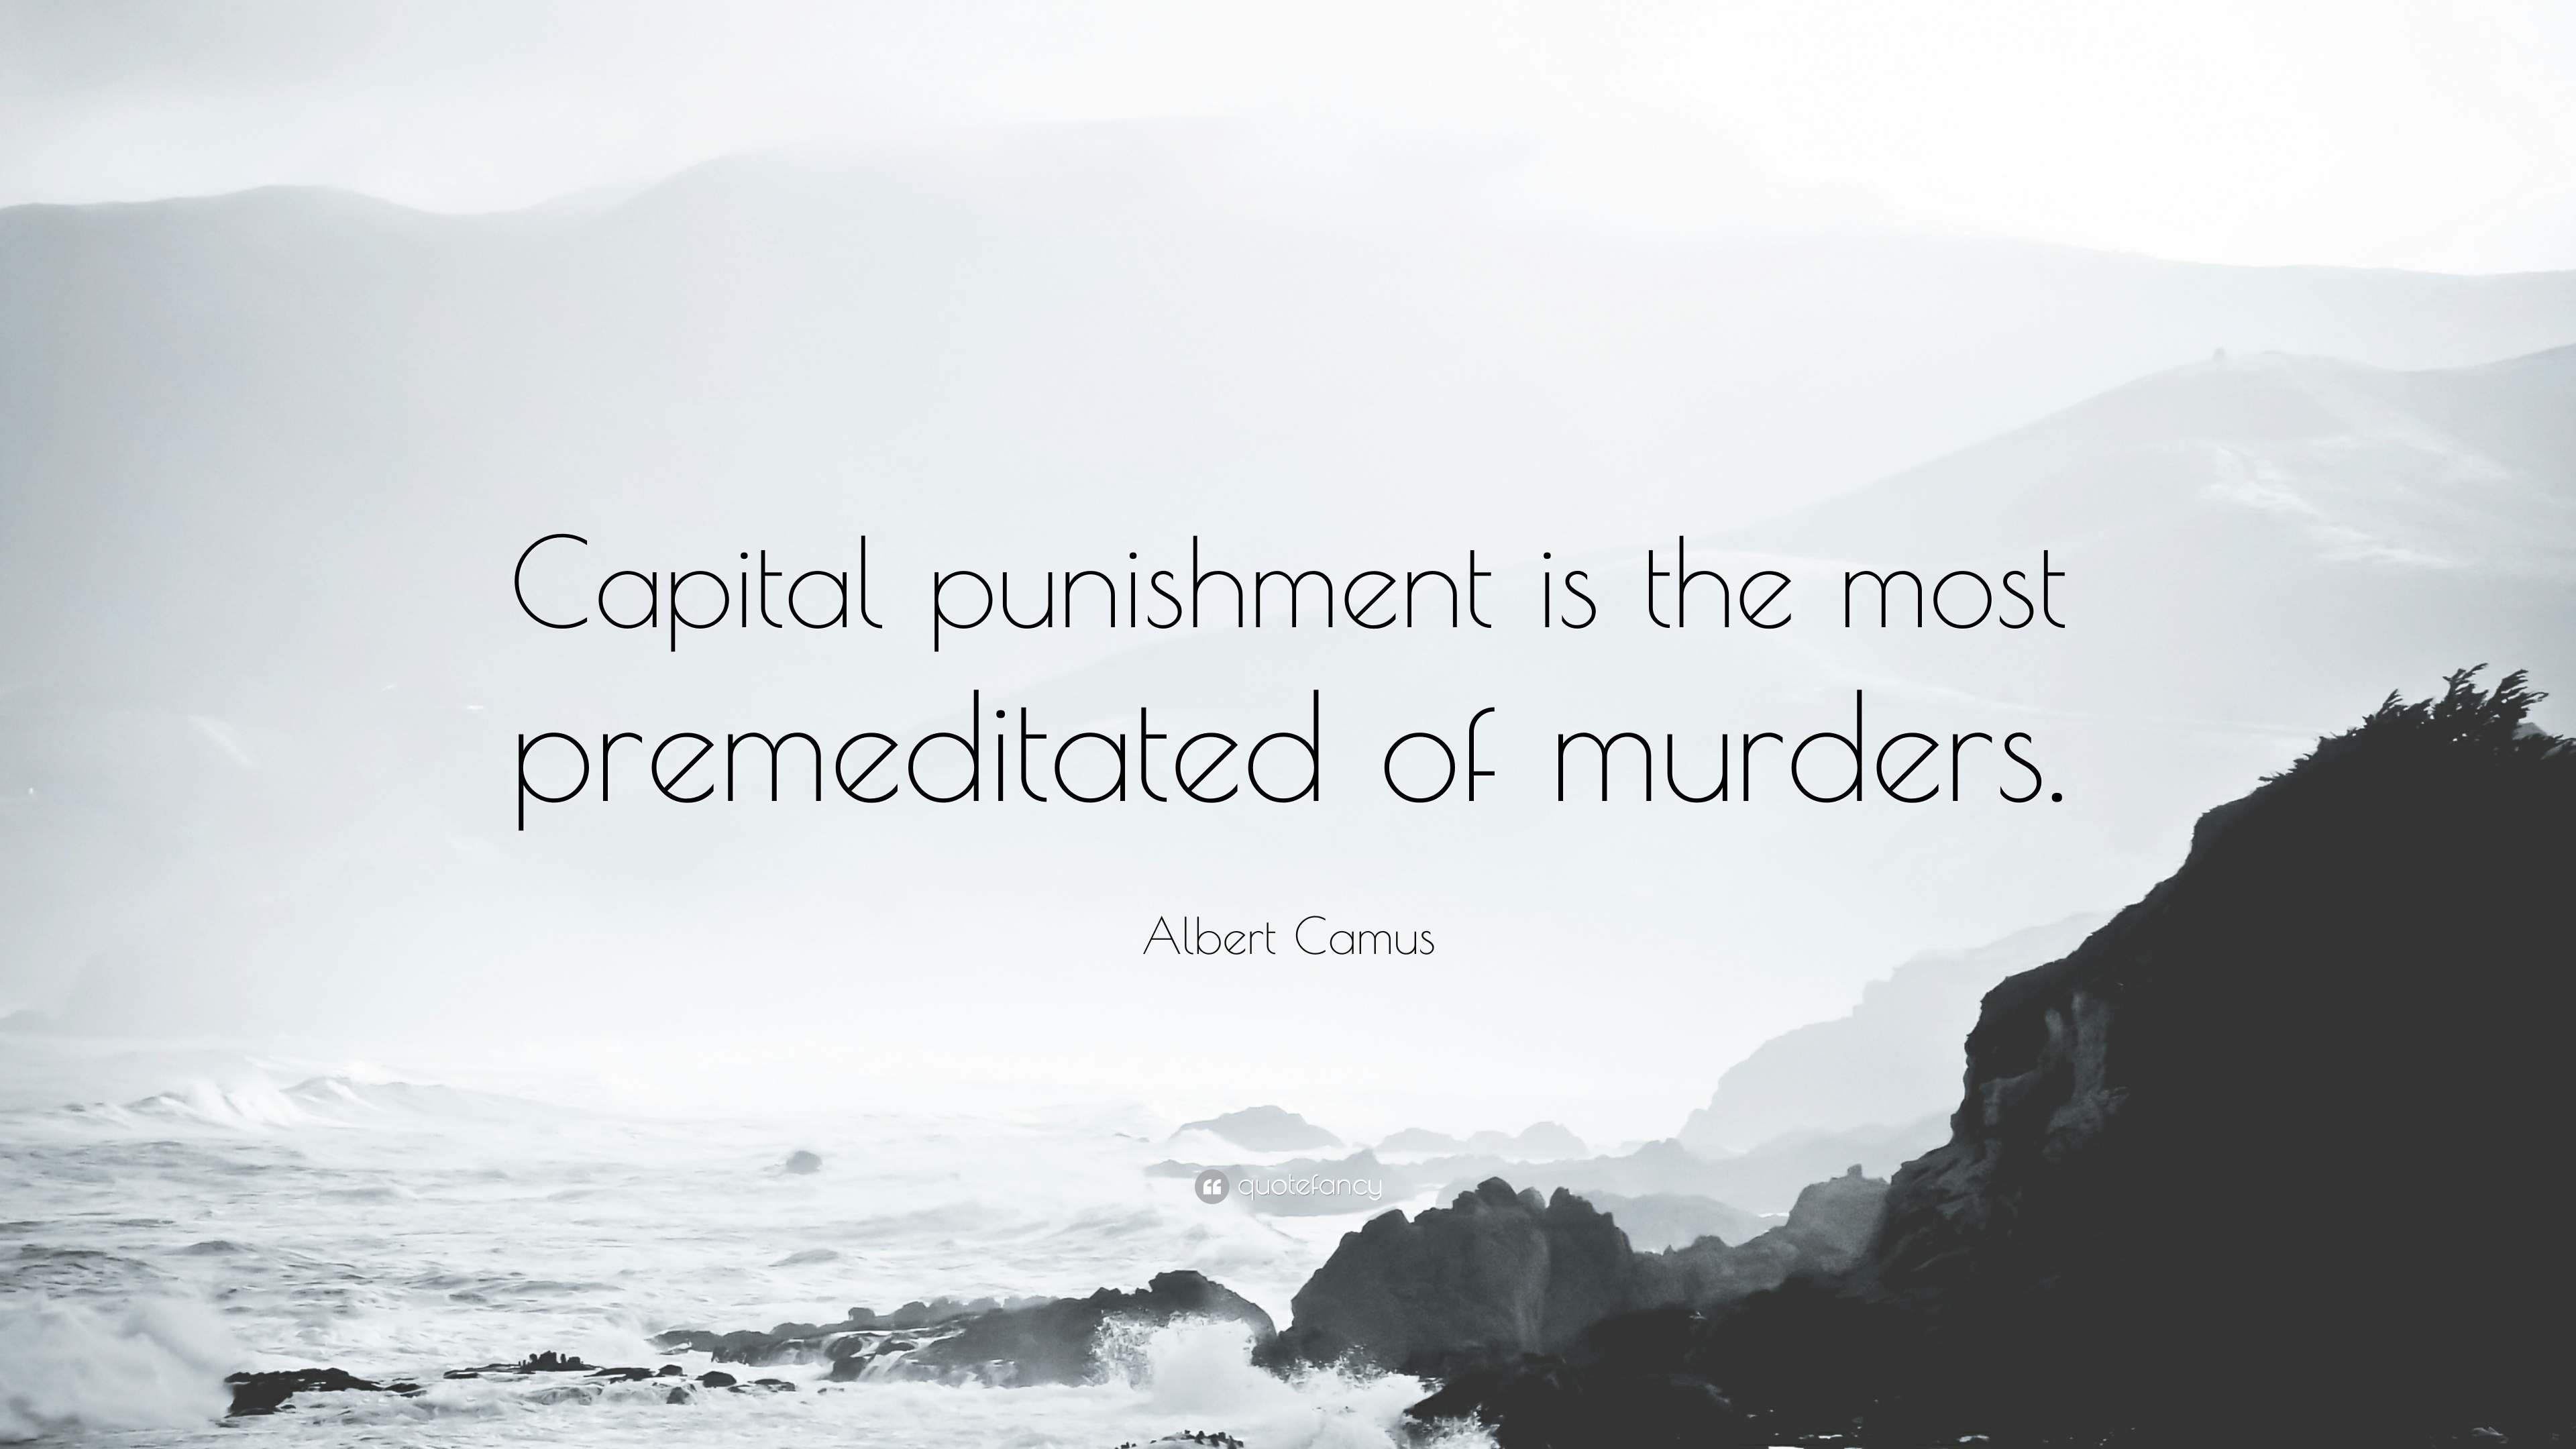 camus essay on capital punishment